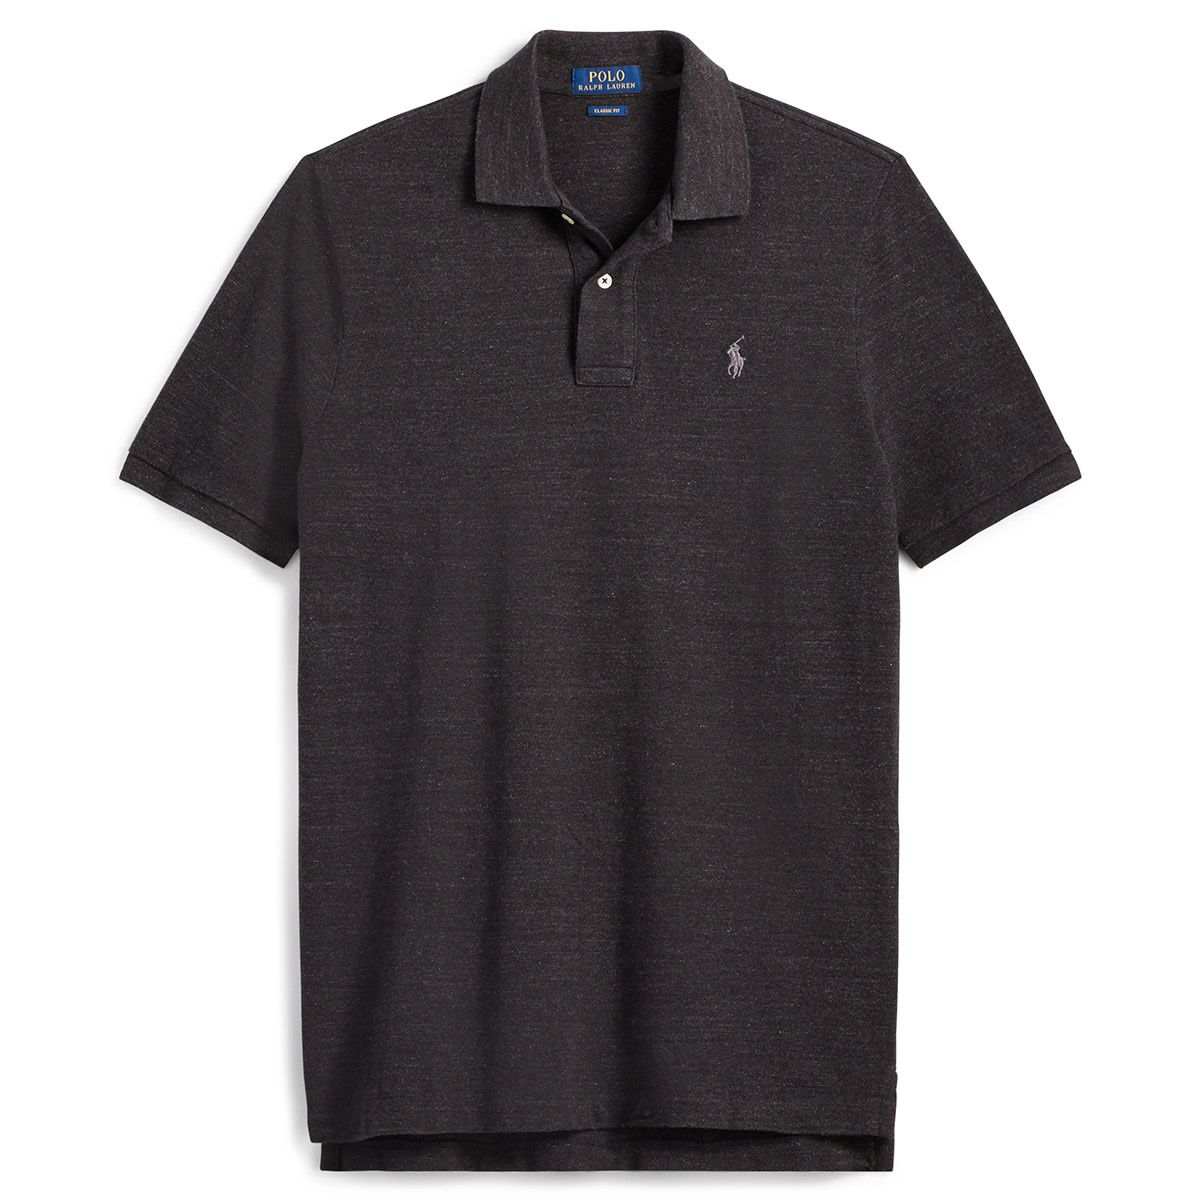 75364aa6896 Polo Ralph Lauren Mens Polo Shirts - Macy's